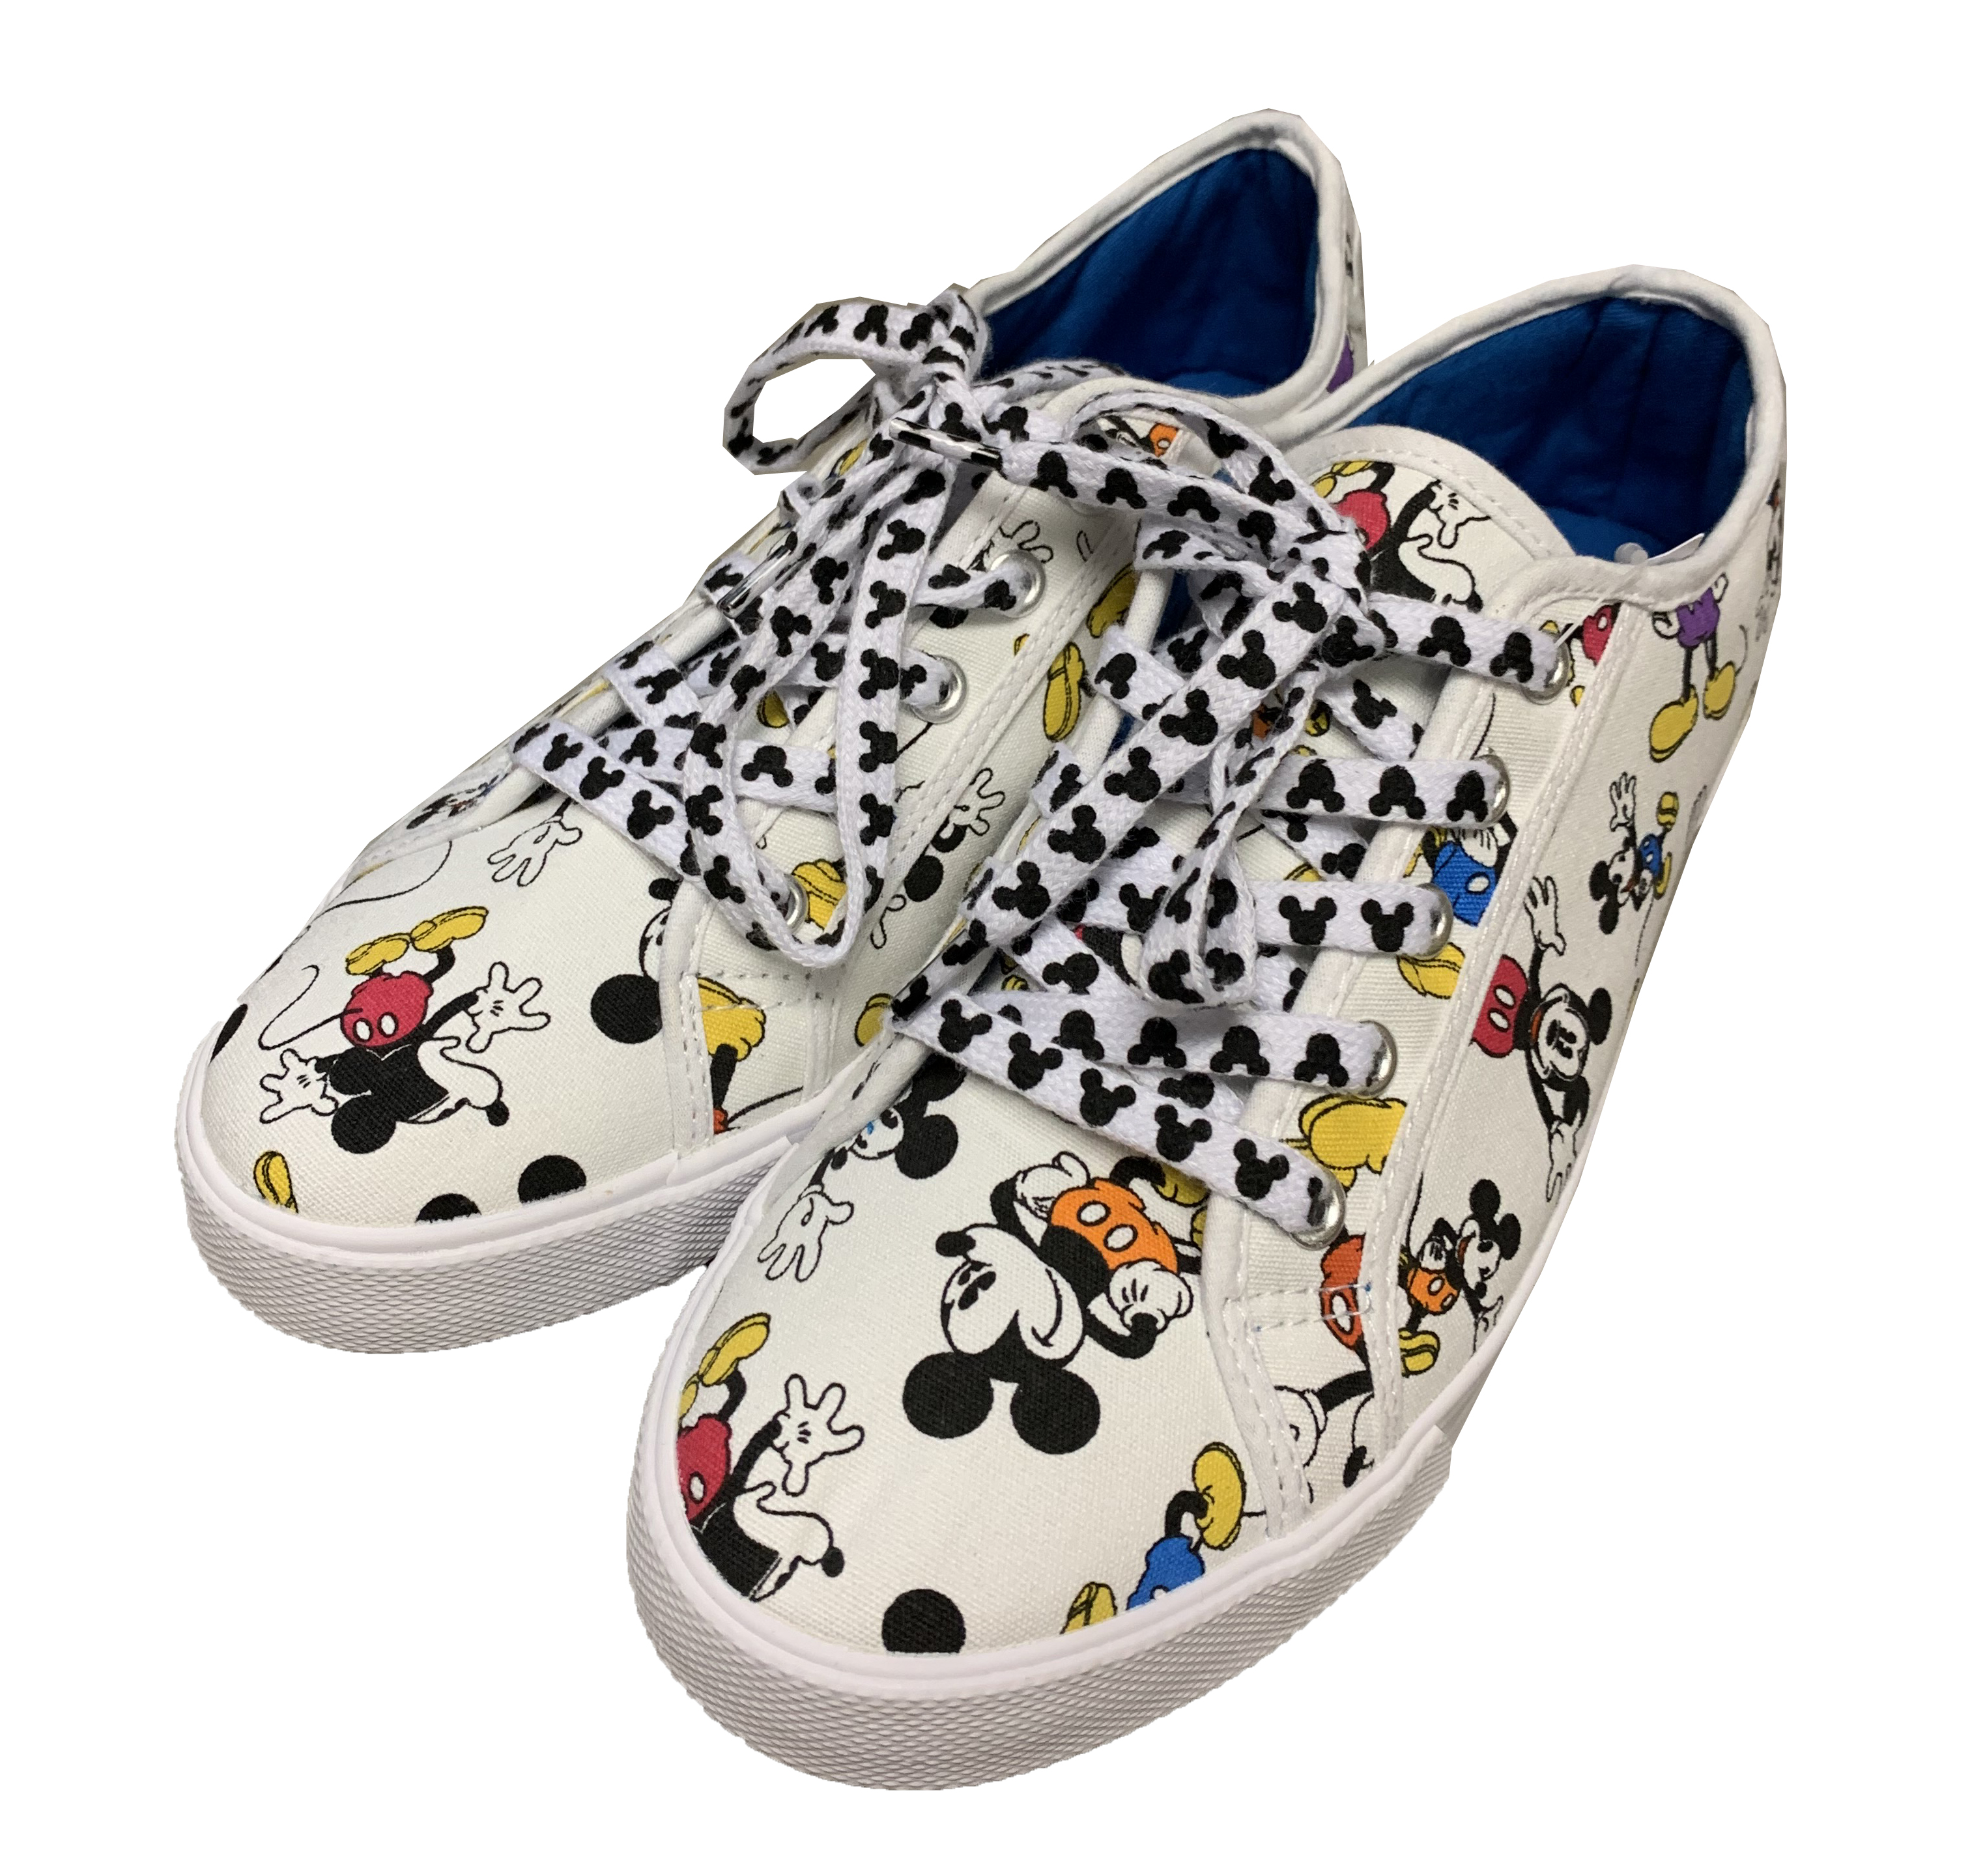 Disney Canvas Shoes for Women - Fantastic 5 - Mickey Mouse